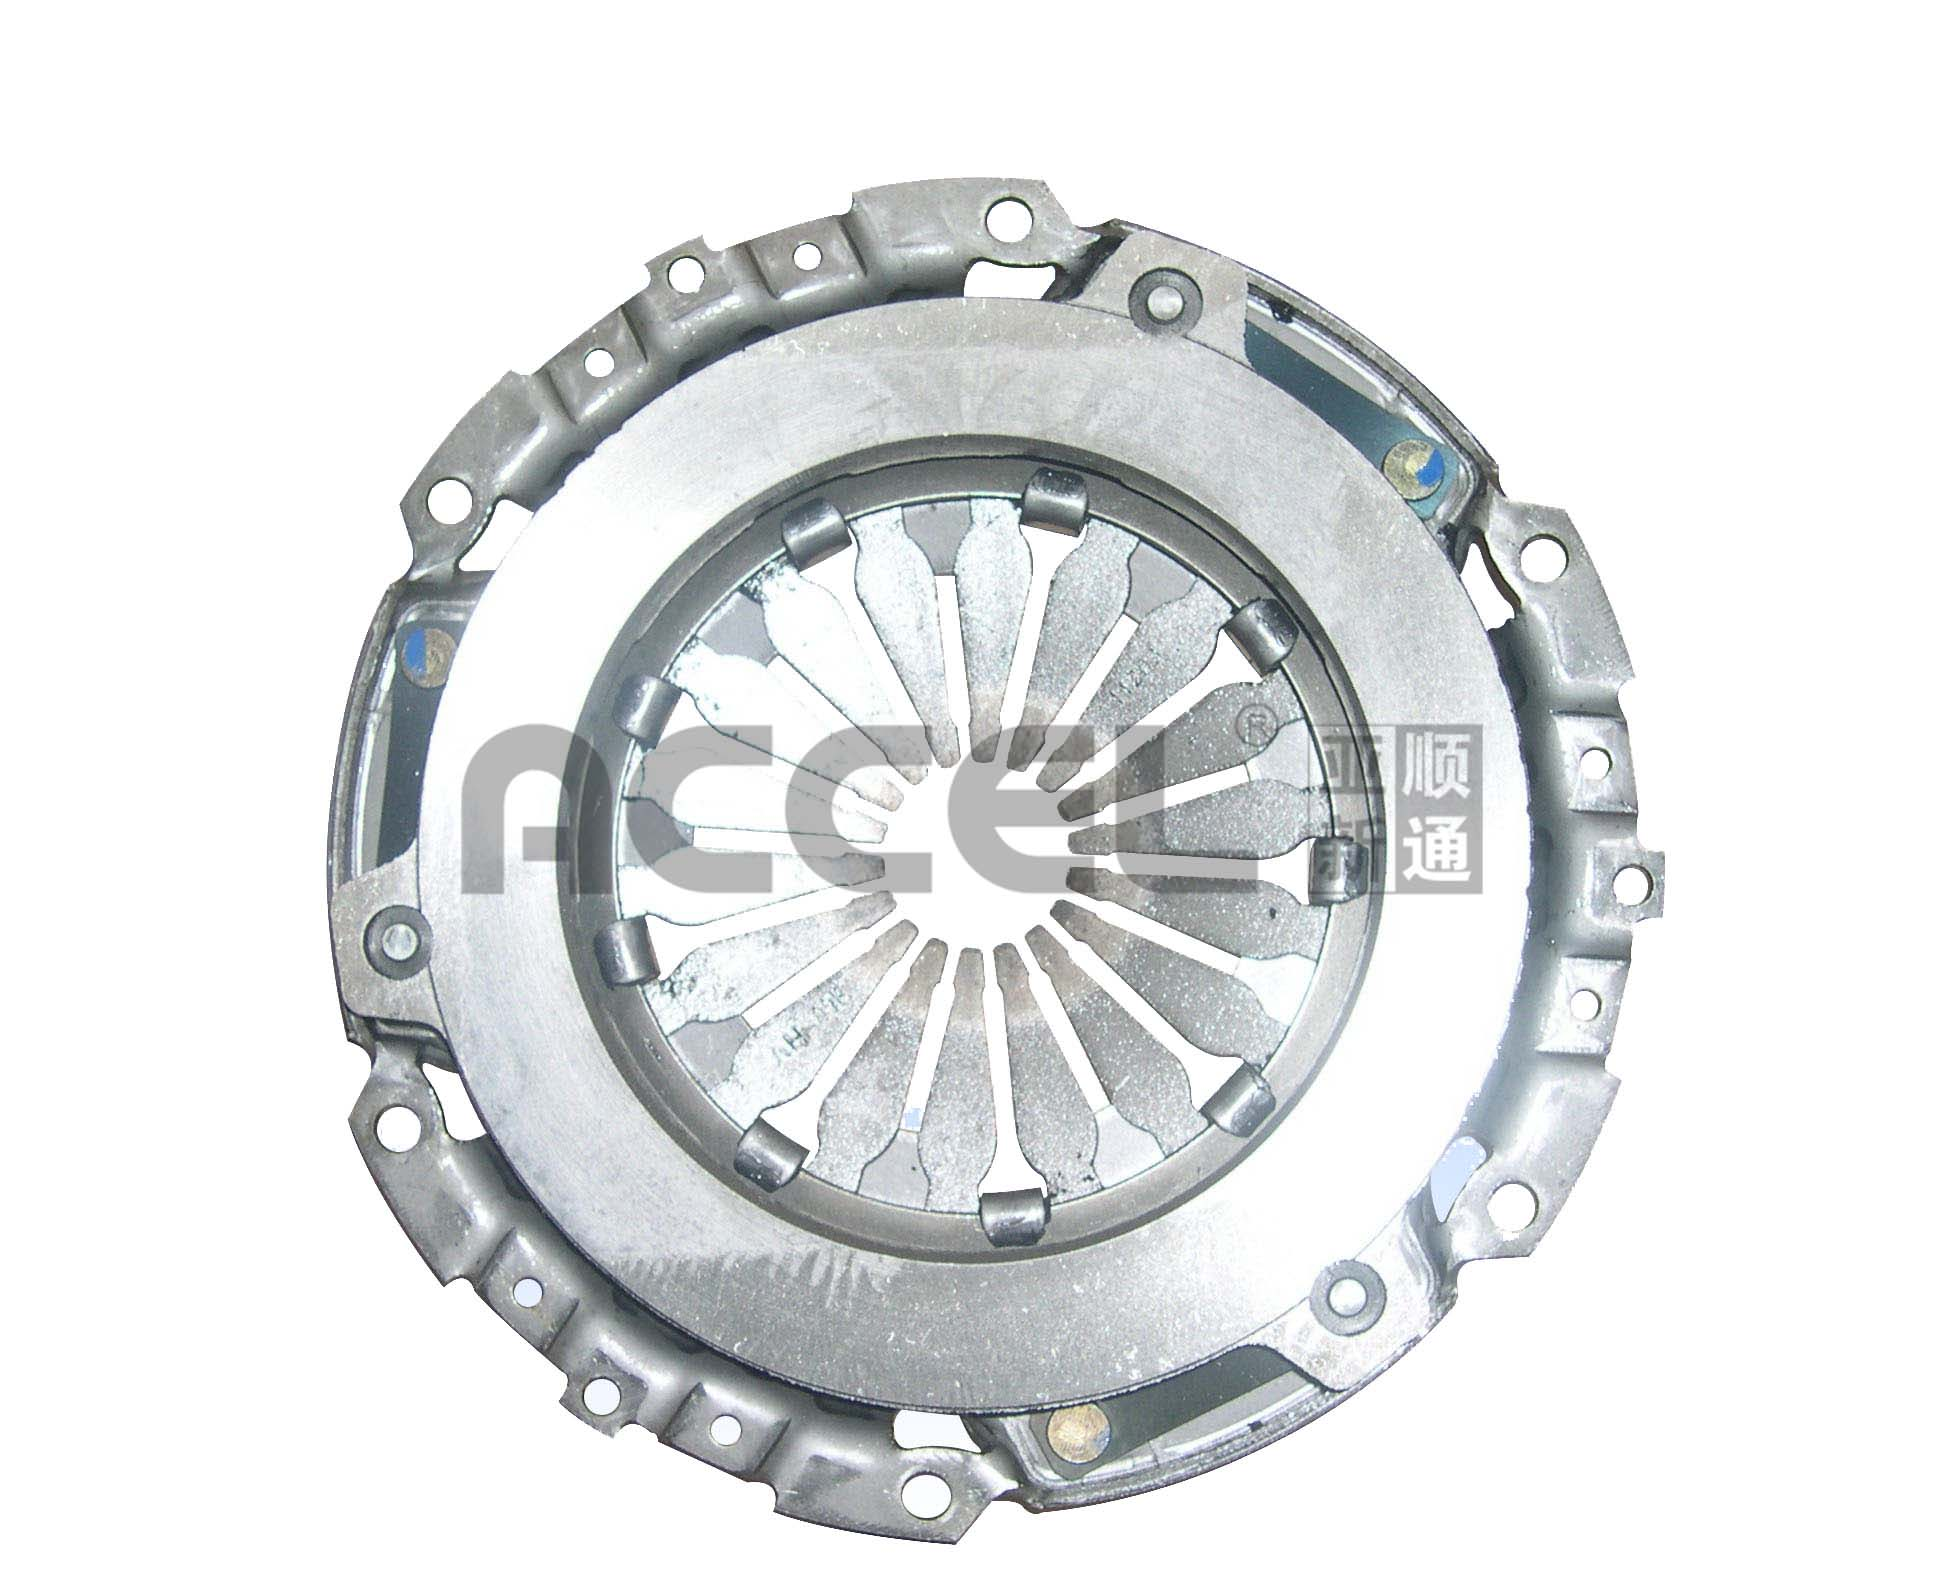 Clutch Cover/OE:NULL/180*130*210/CPG-007/PEUGEOT/LY392